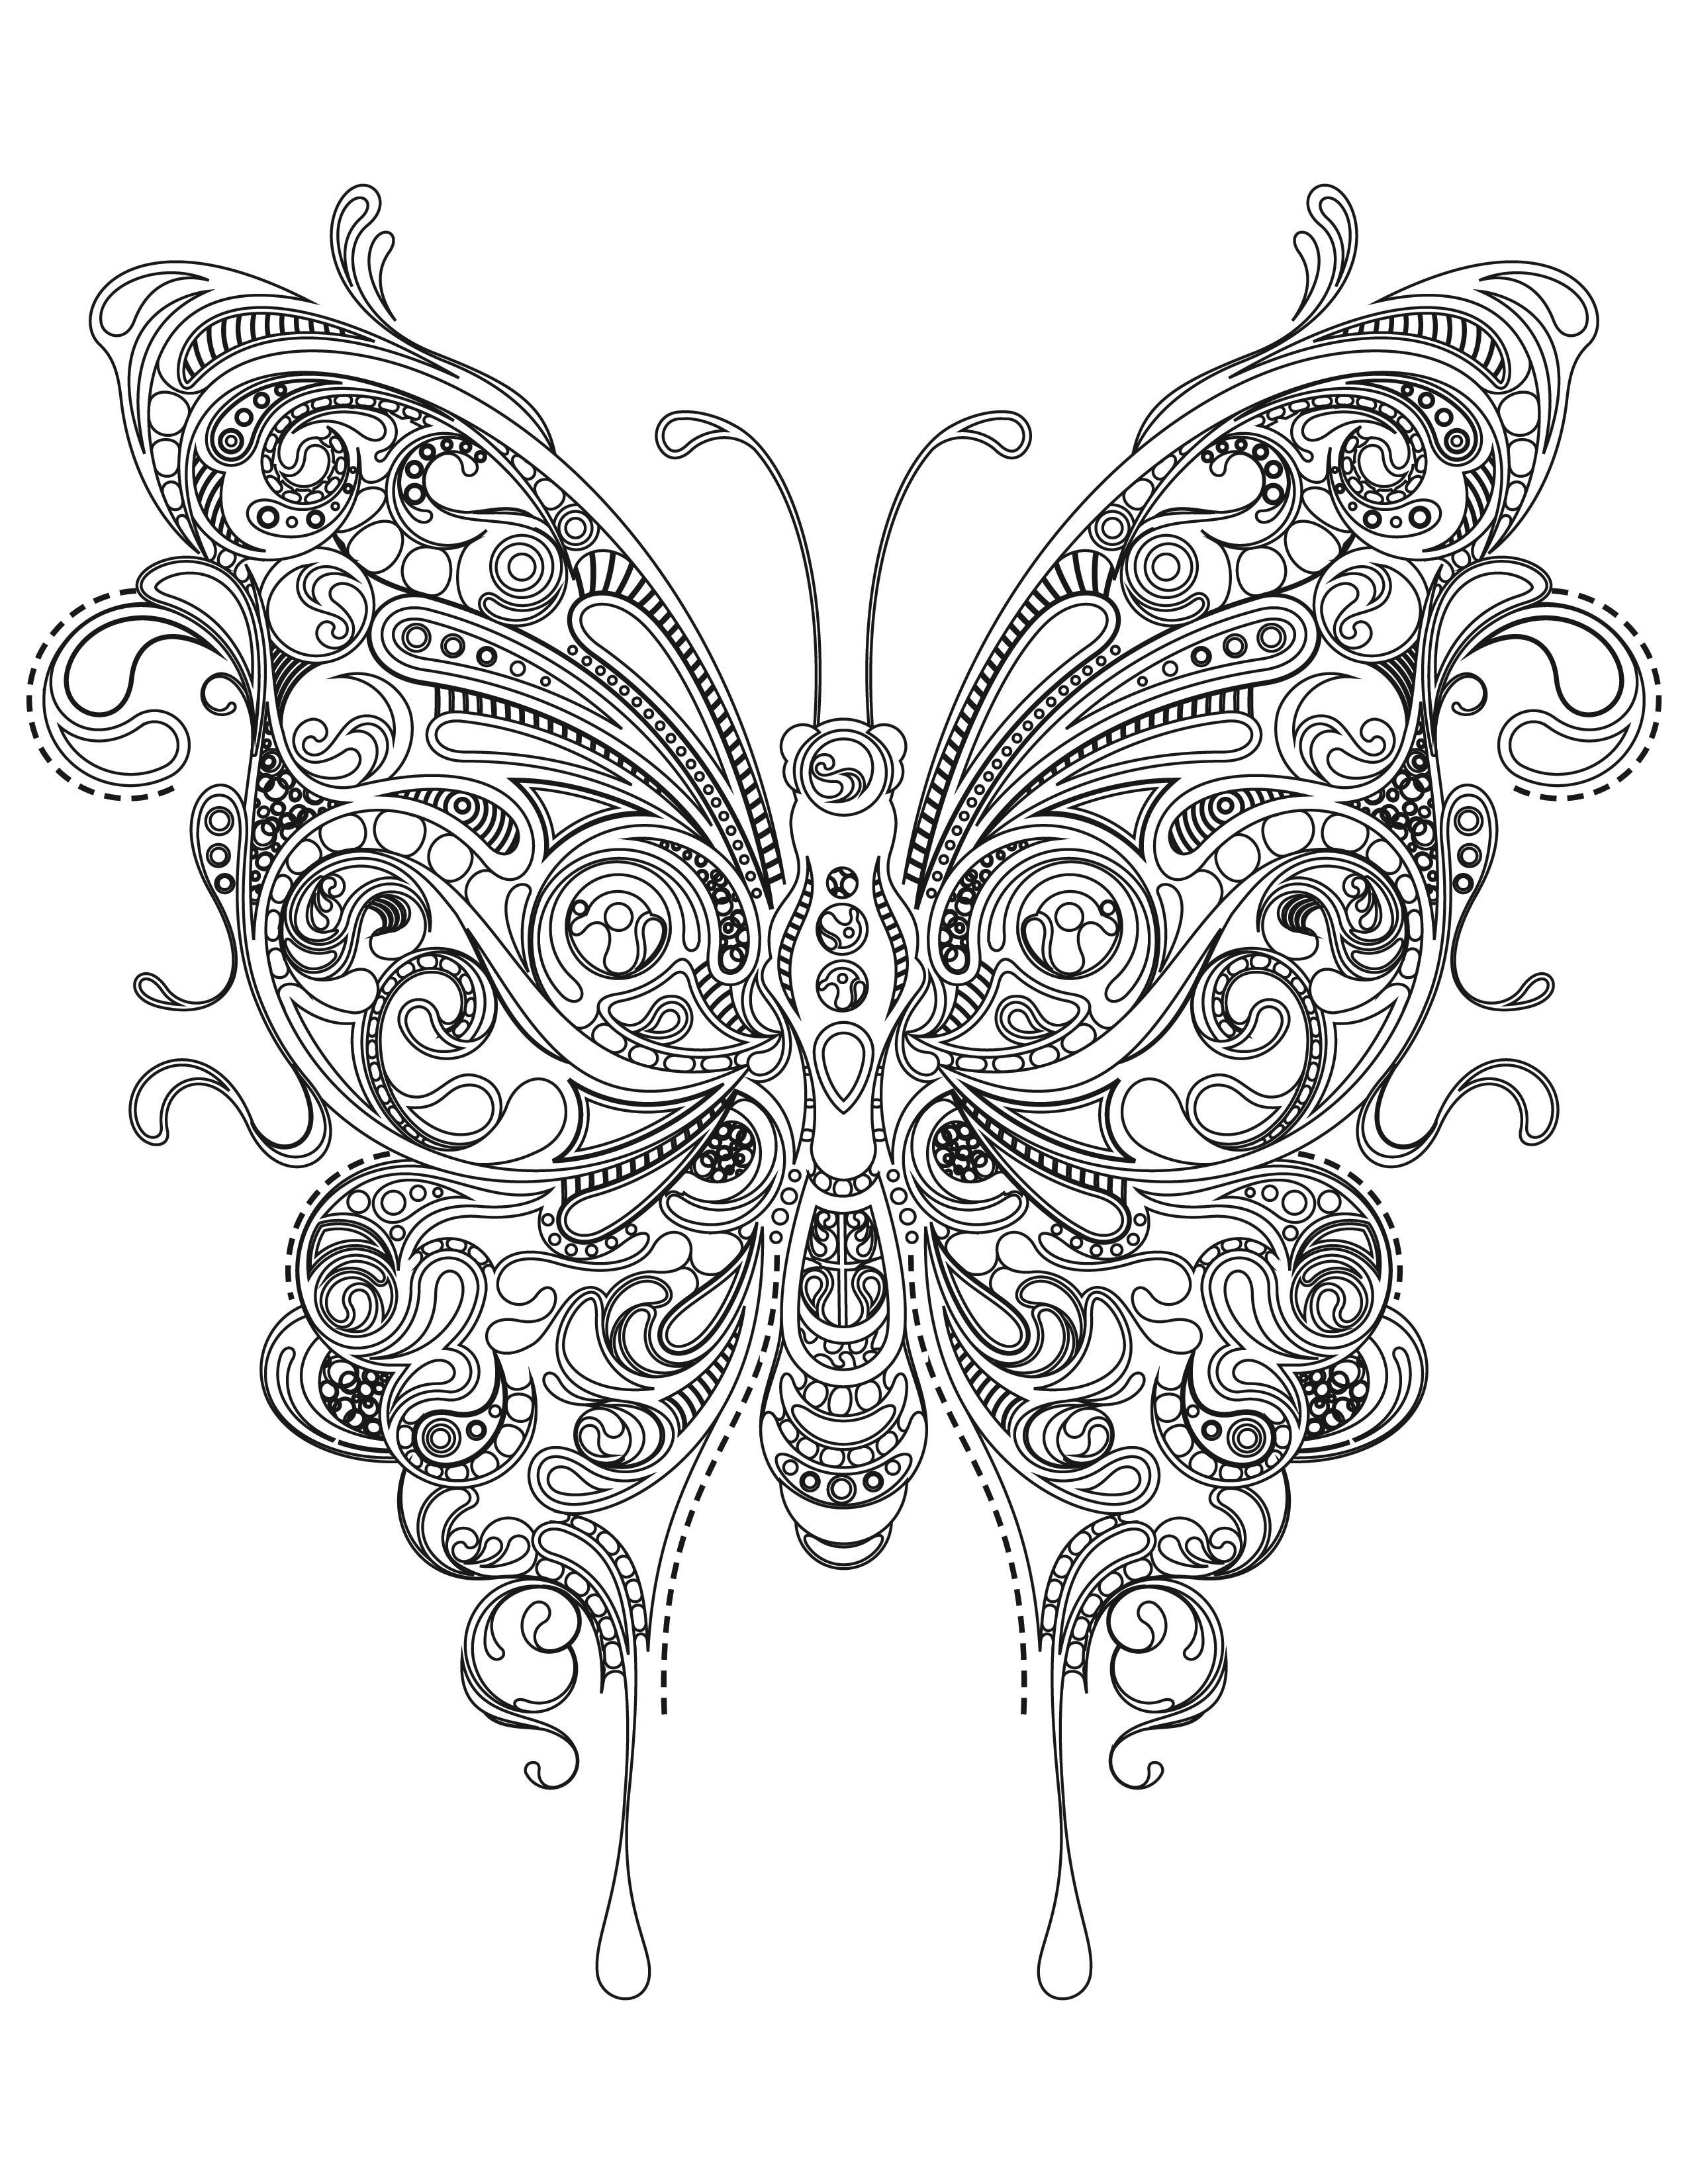 butterflies coloring page butterfly coloring pages for adults best coloring pages butterflies page coloring